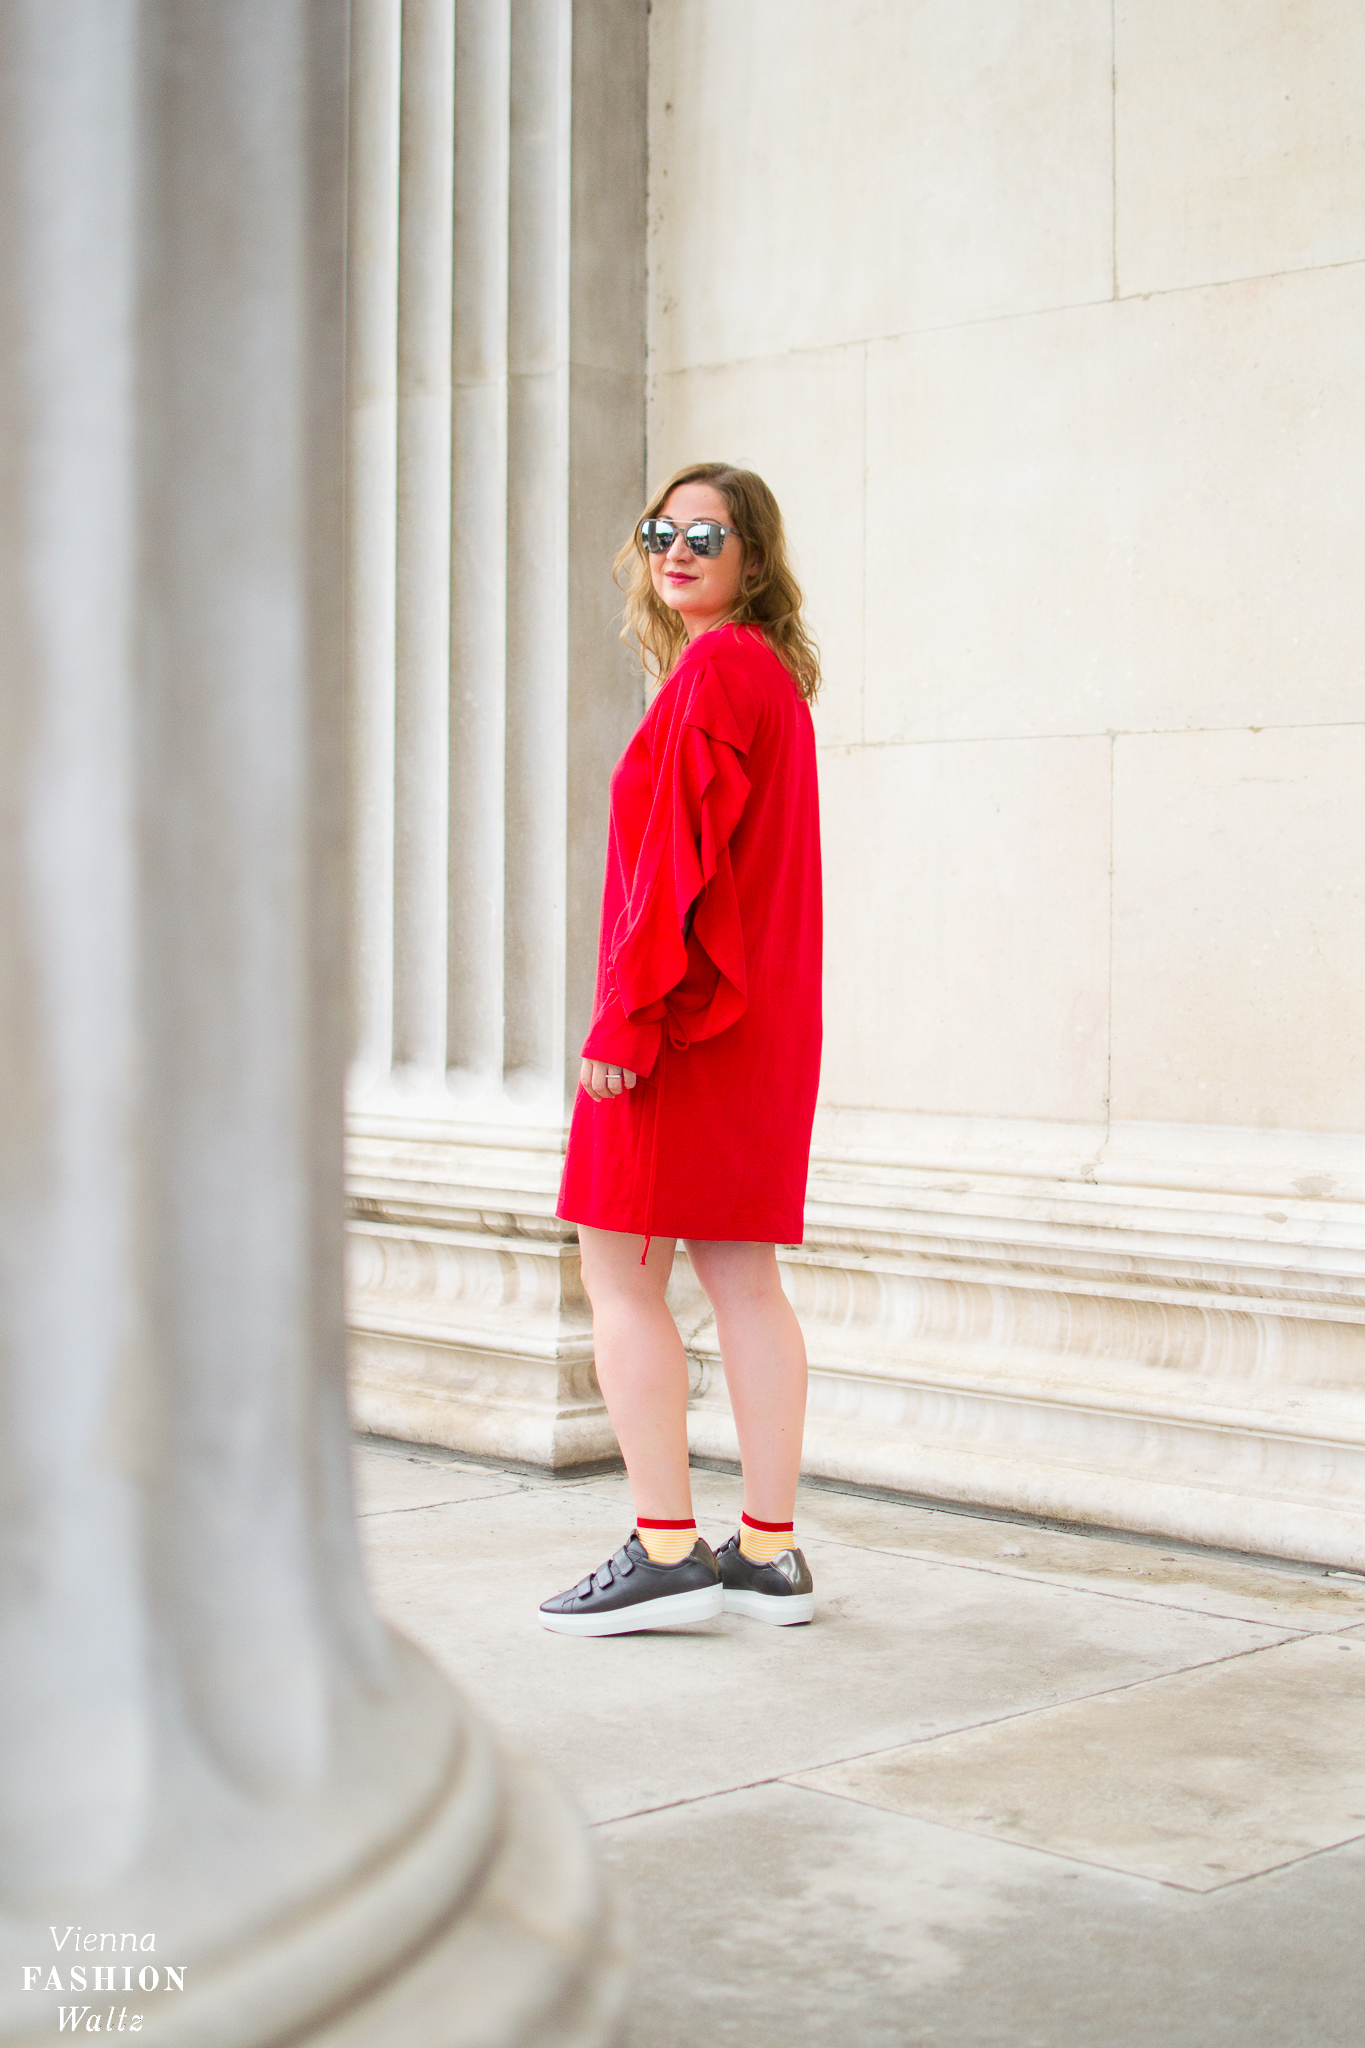 Oversized Red Sweatshirt Dress Outfit with Sneakers, Cos Jewellery, Zara Dress, Högl Sneakers, Streetstyle Vienna